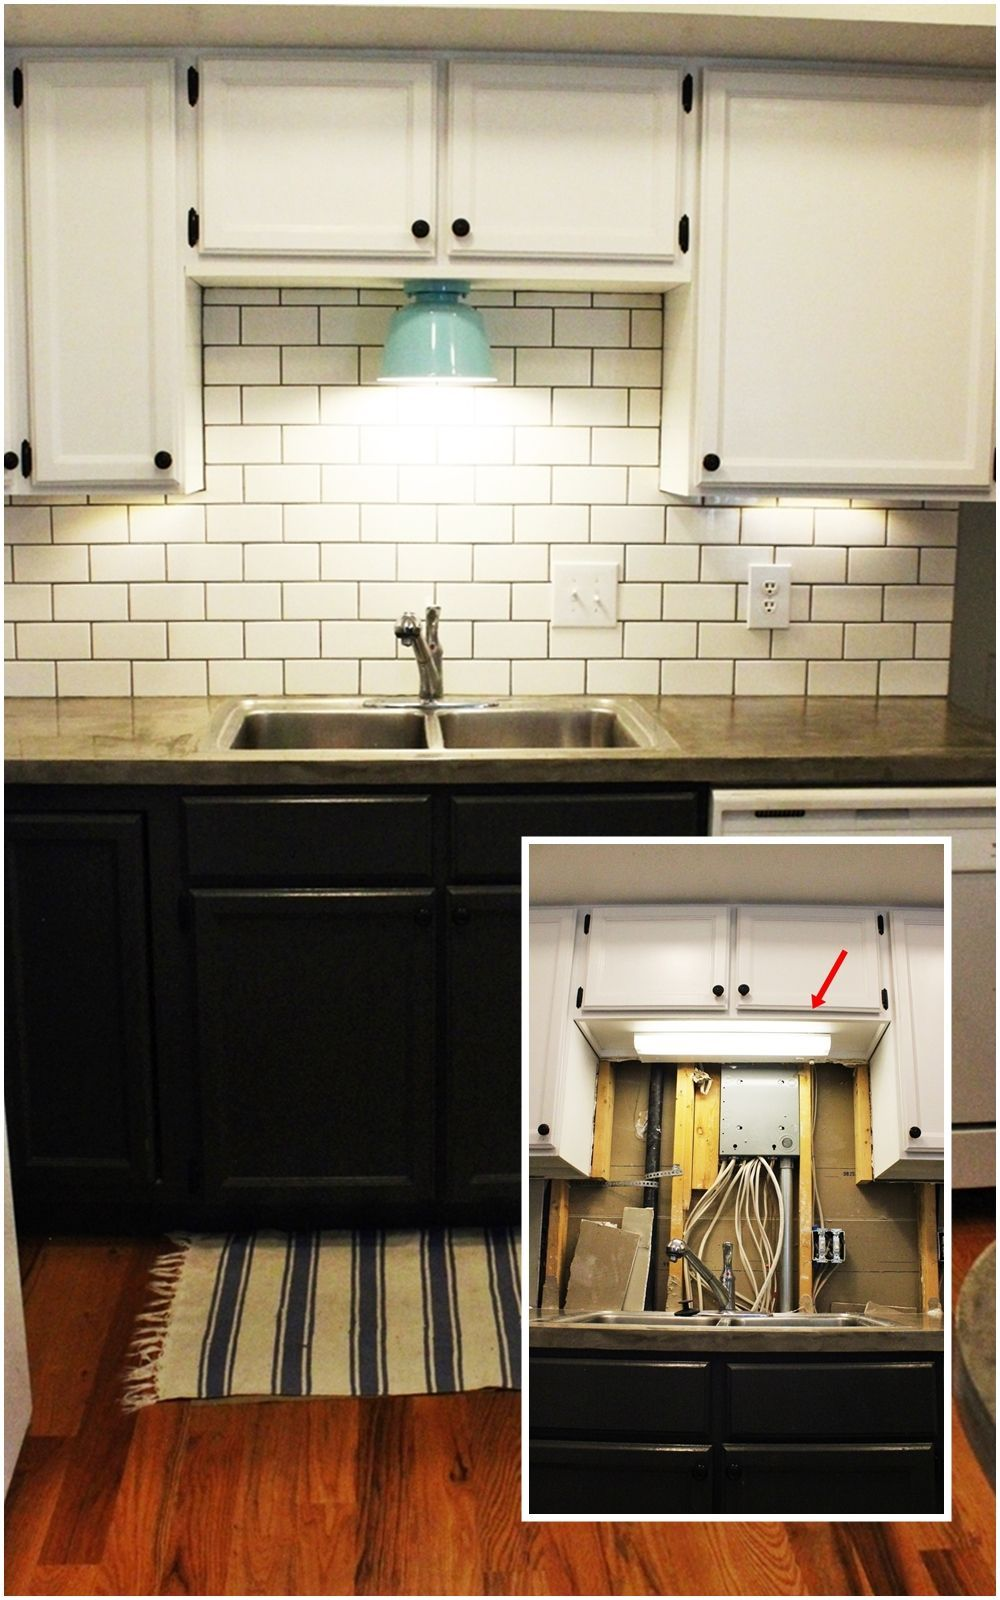 DIY Kitchen Lighting Upgrade LED Under-Cabinet Lights u0026 Above-the-Sink Light & DIY Kitchen Lighting Upgrade: LED Under-Cabinet Lights u0026 Above-the ...